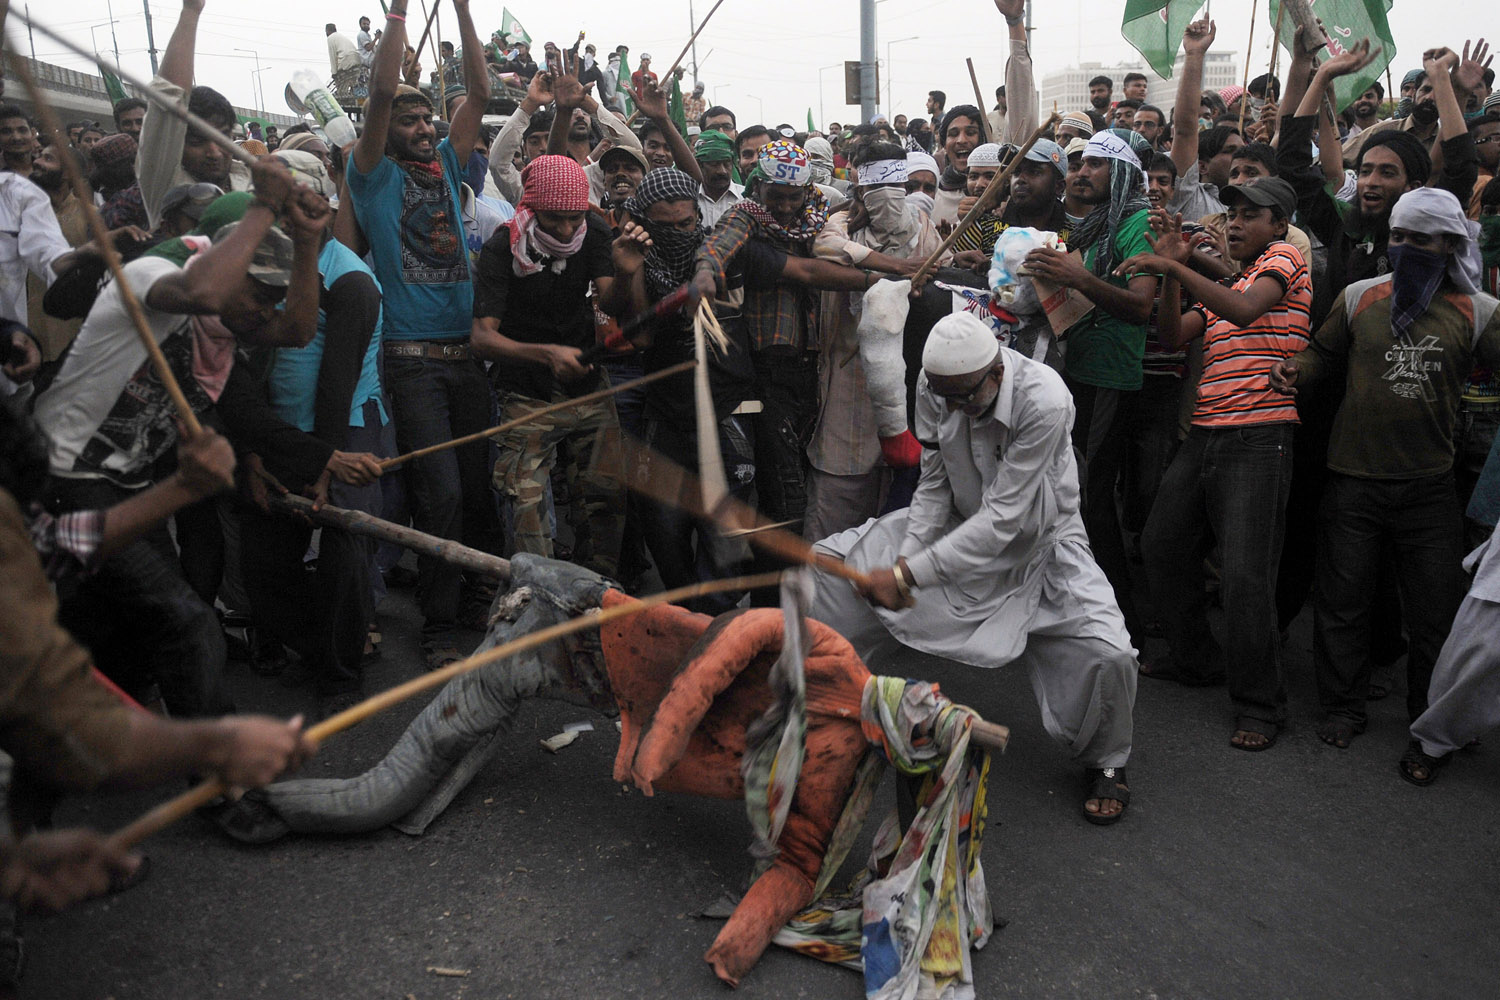 Sept. 18, 2012. Pakistani Sunni Muslims protesters beat an effigy of U.S. President Barack Obama during a protest against an anti-Islam movie in Peshawar, Pakistan.